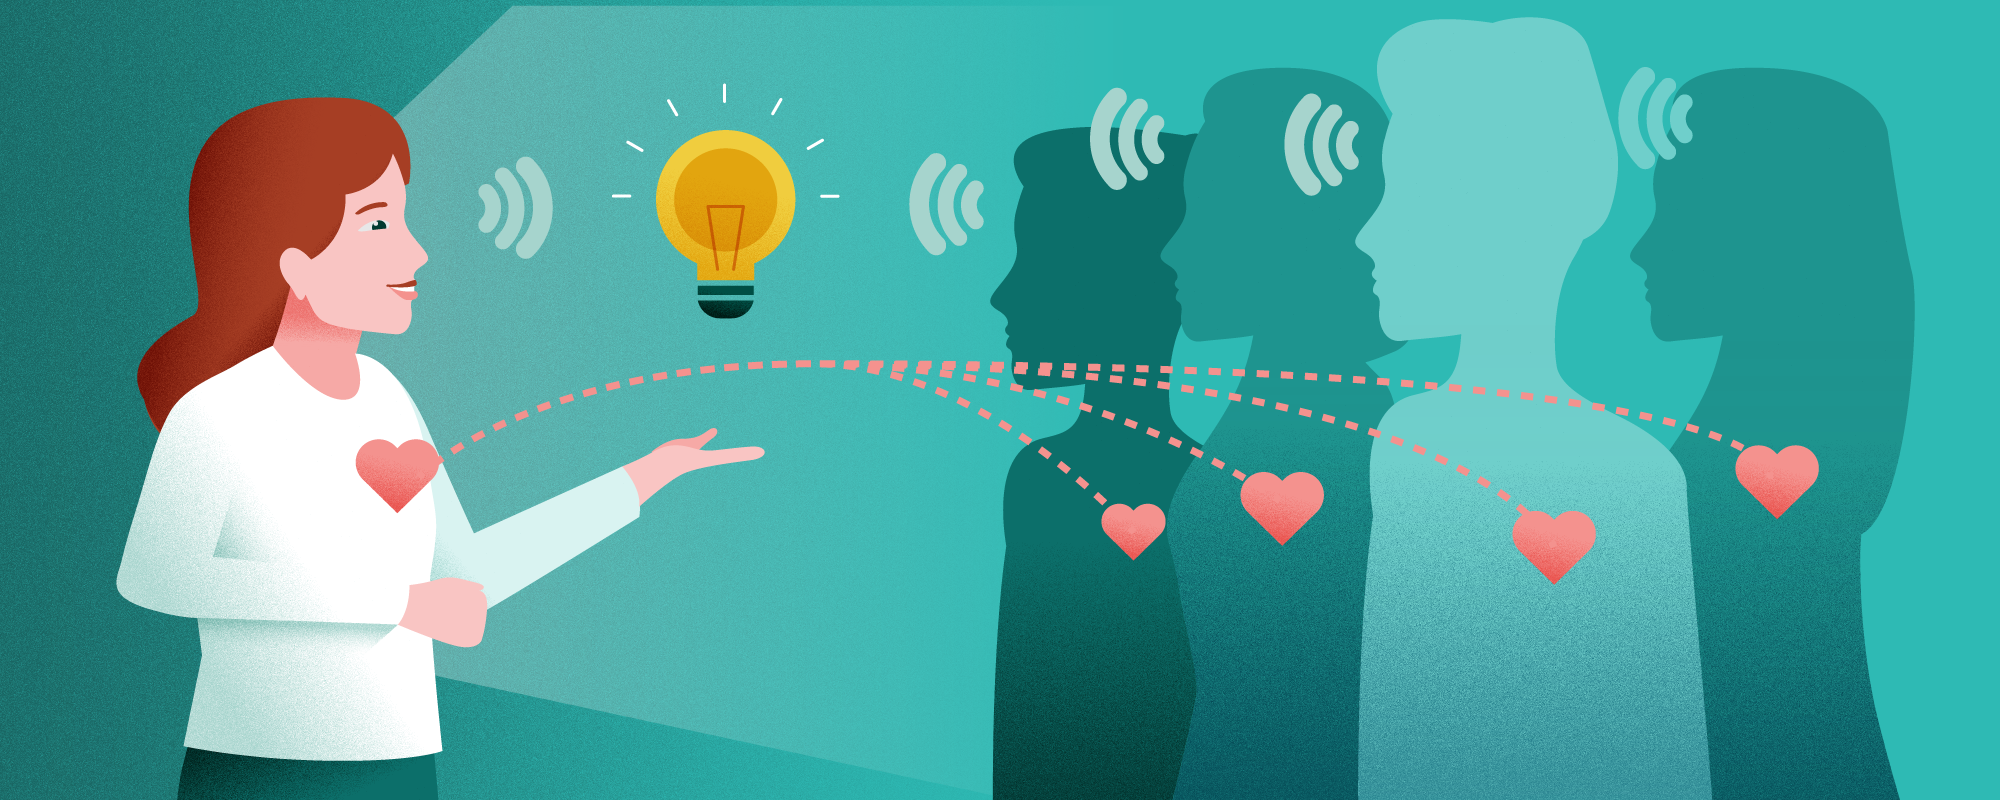 3 Ways to Better Connect with Your Virtual Audiences